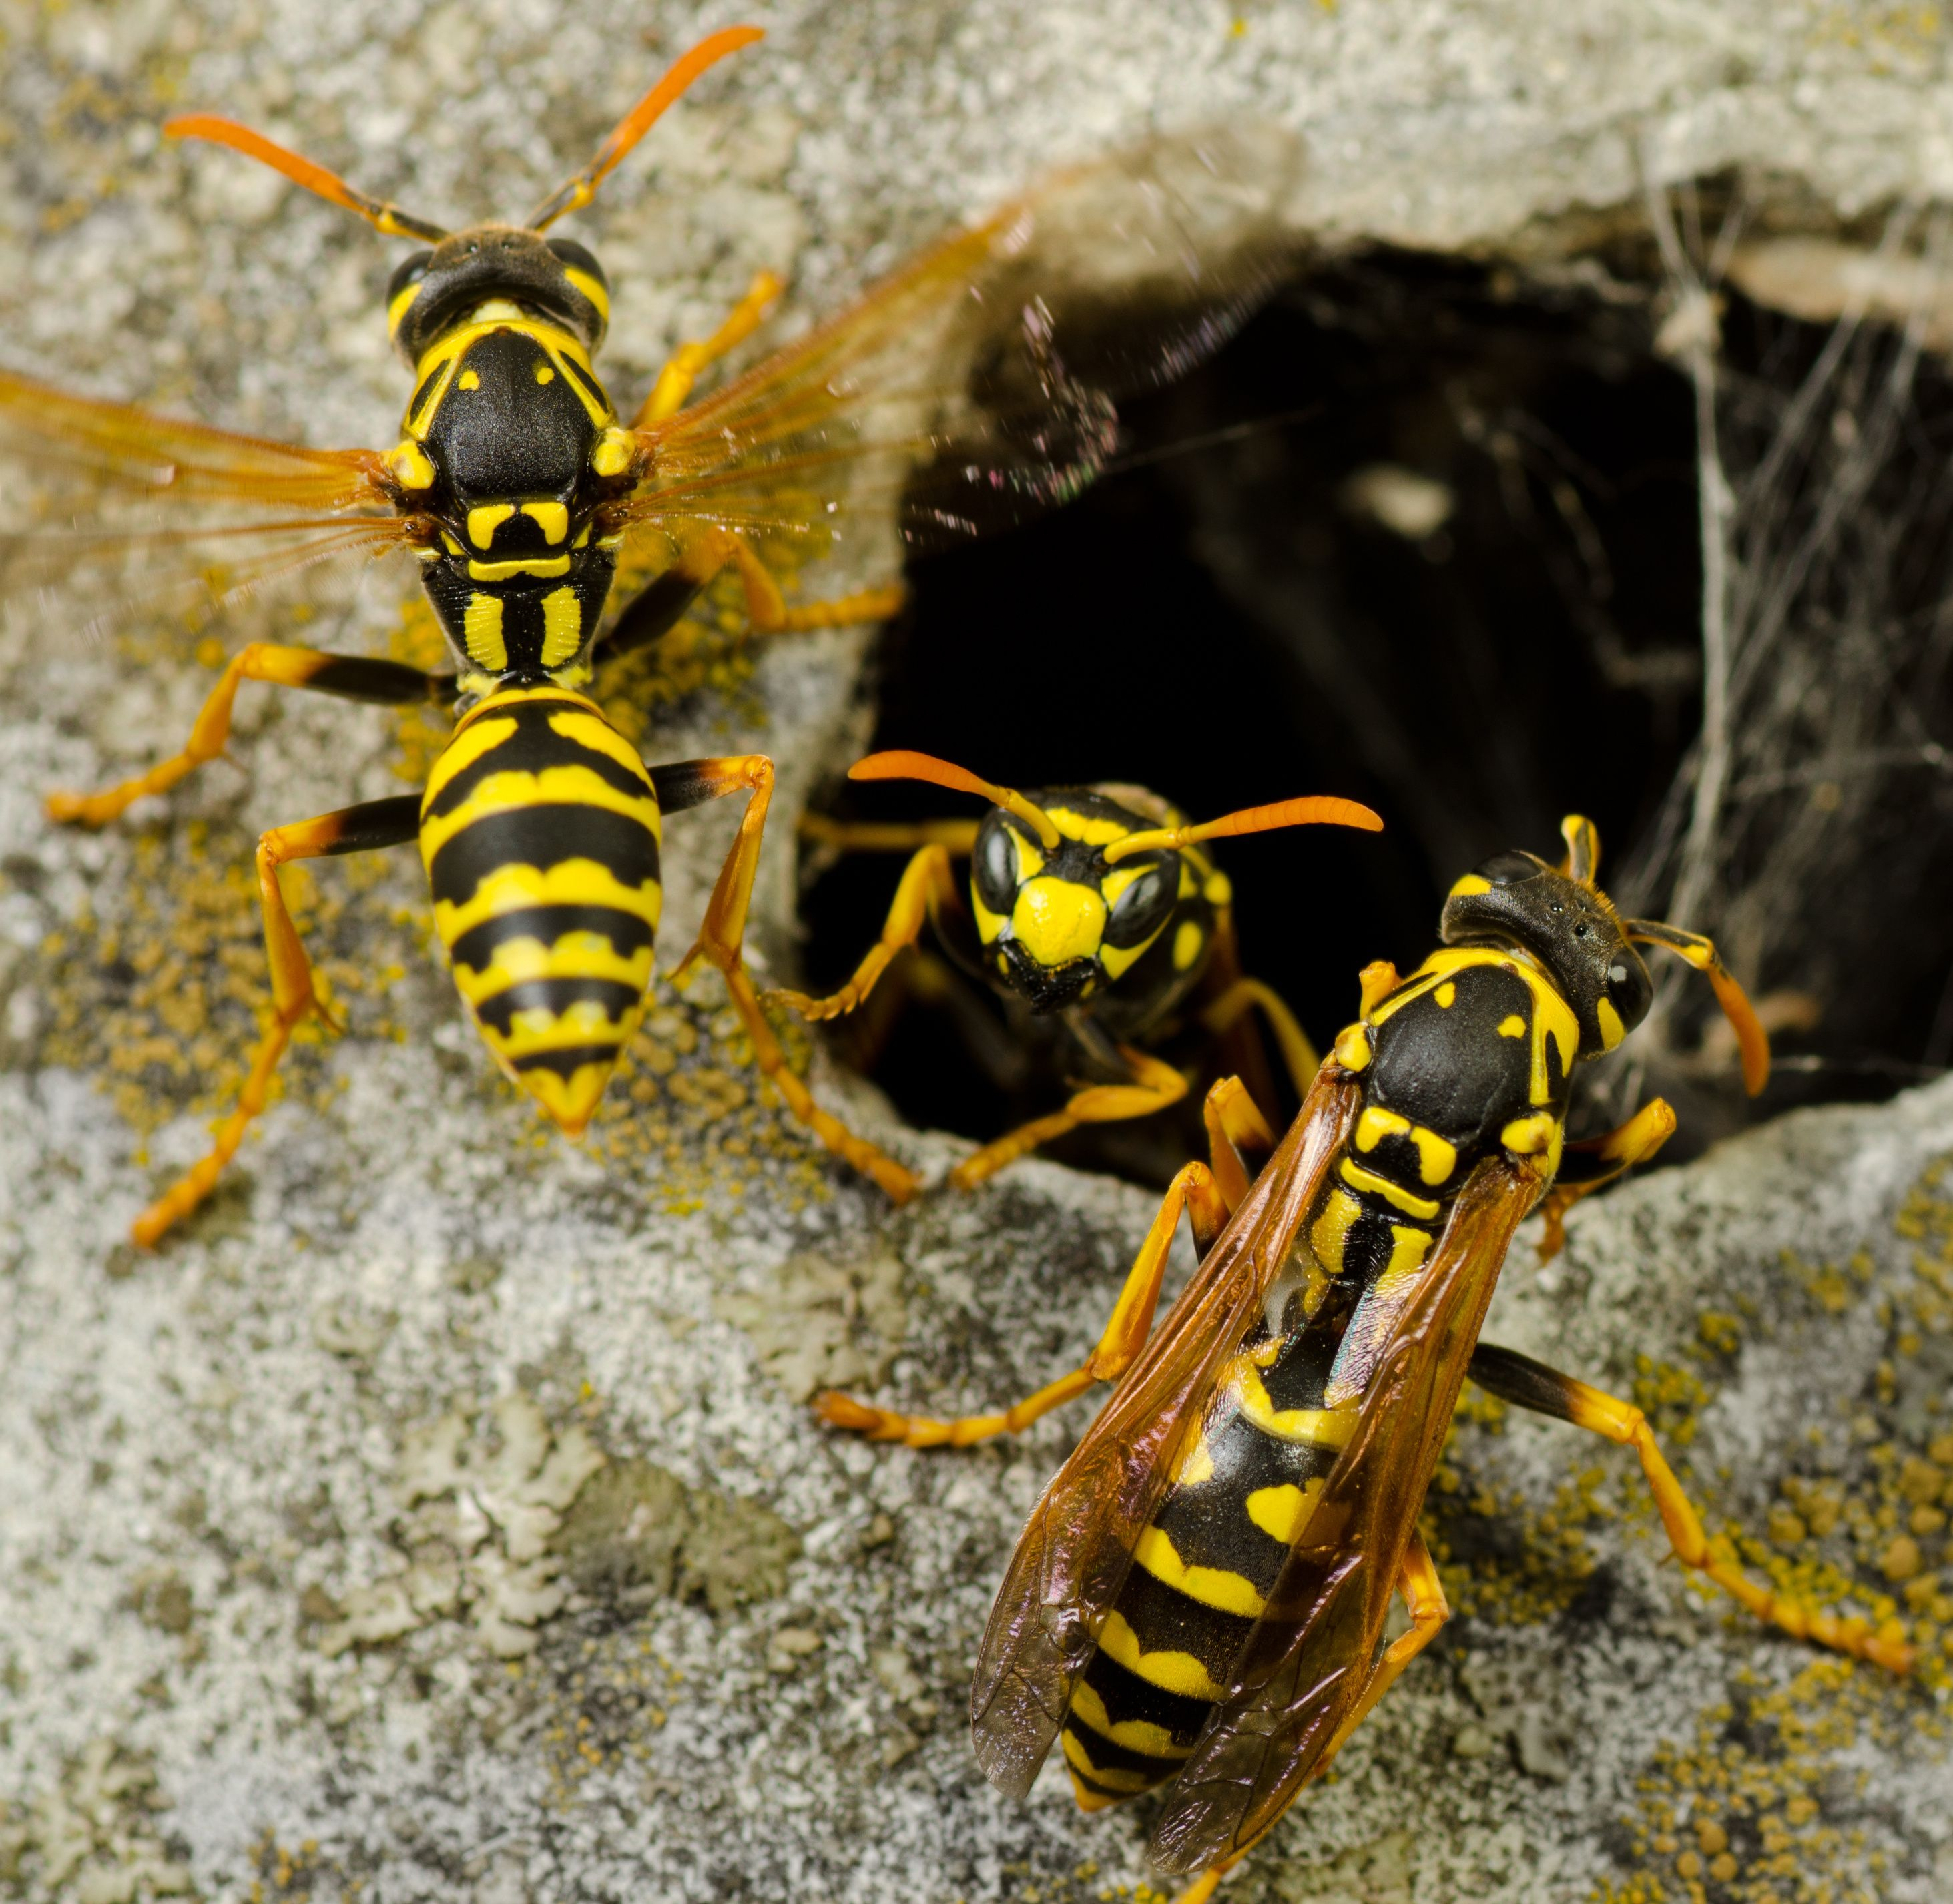 What does a wasp queen look like